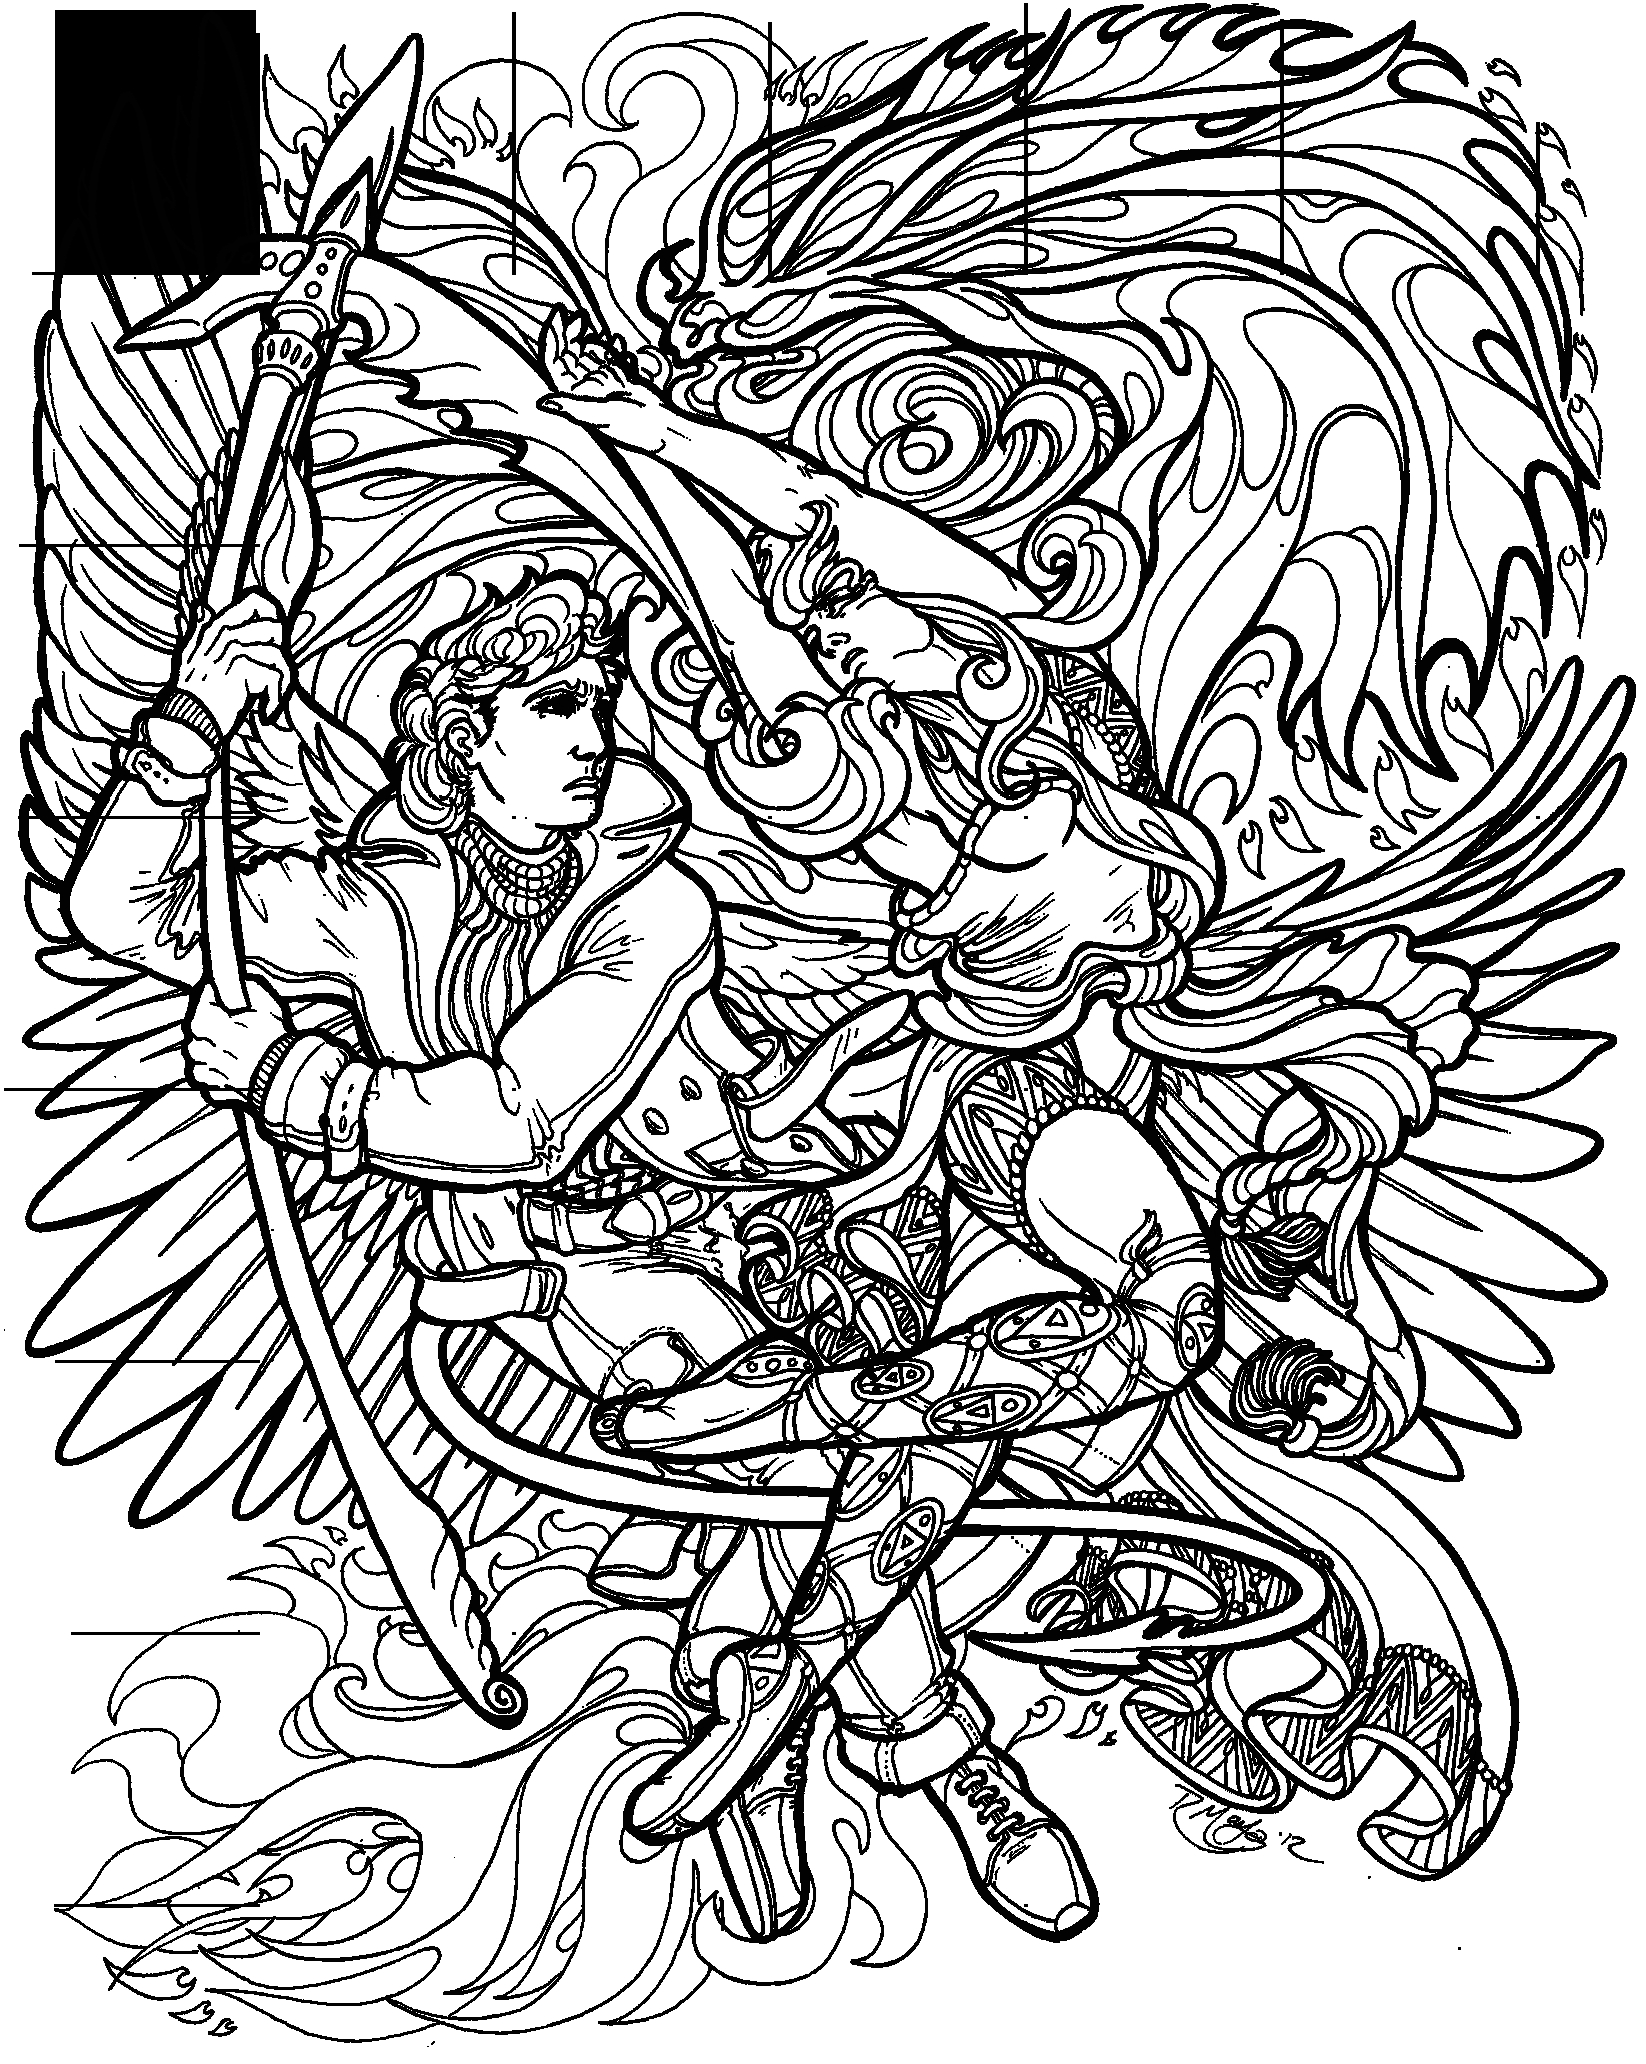 The Hardest Coloring Page In the World 10 Pics Hardest Coloring Page Ever World S Hardest